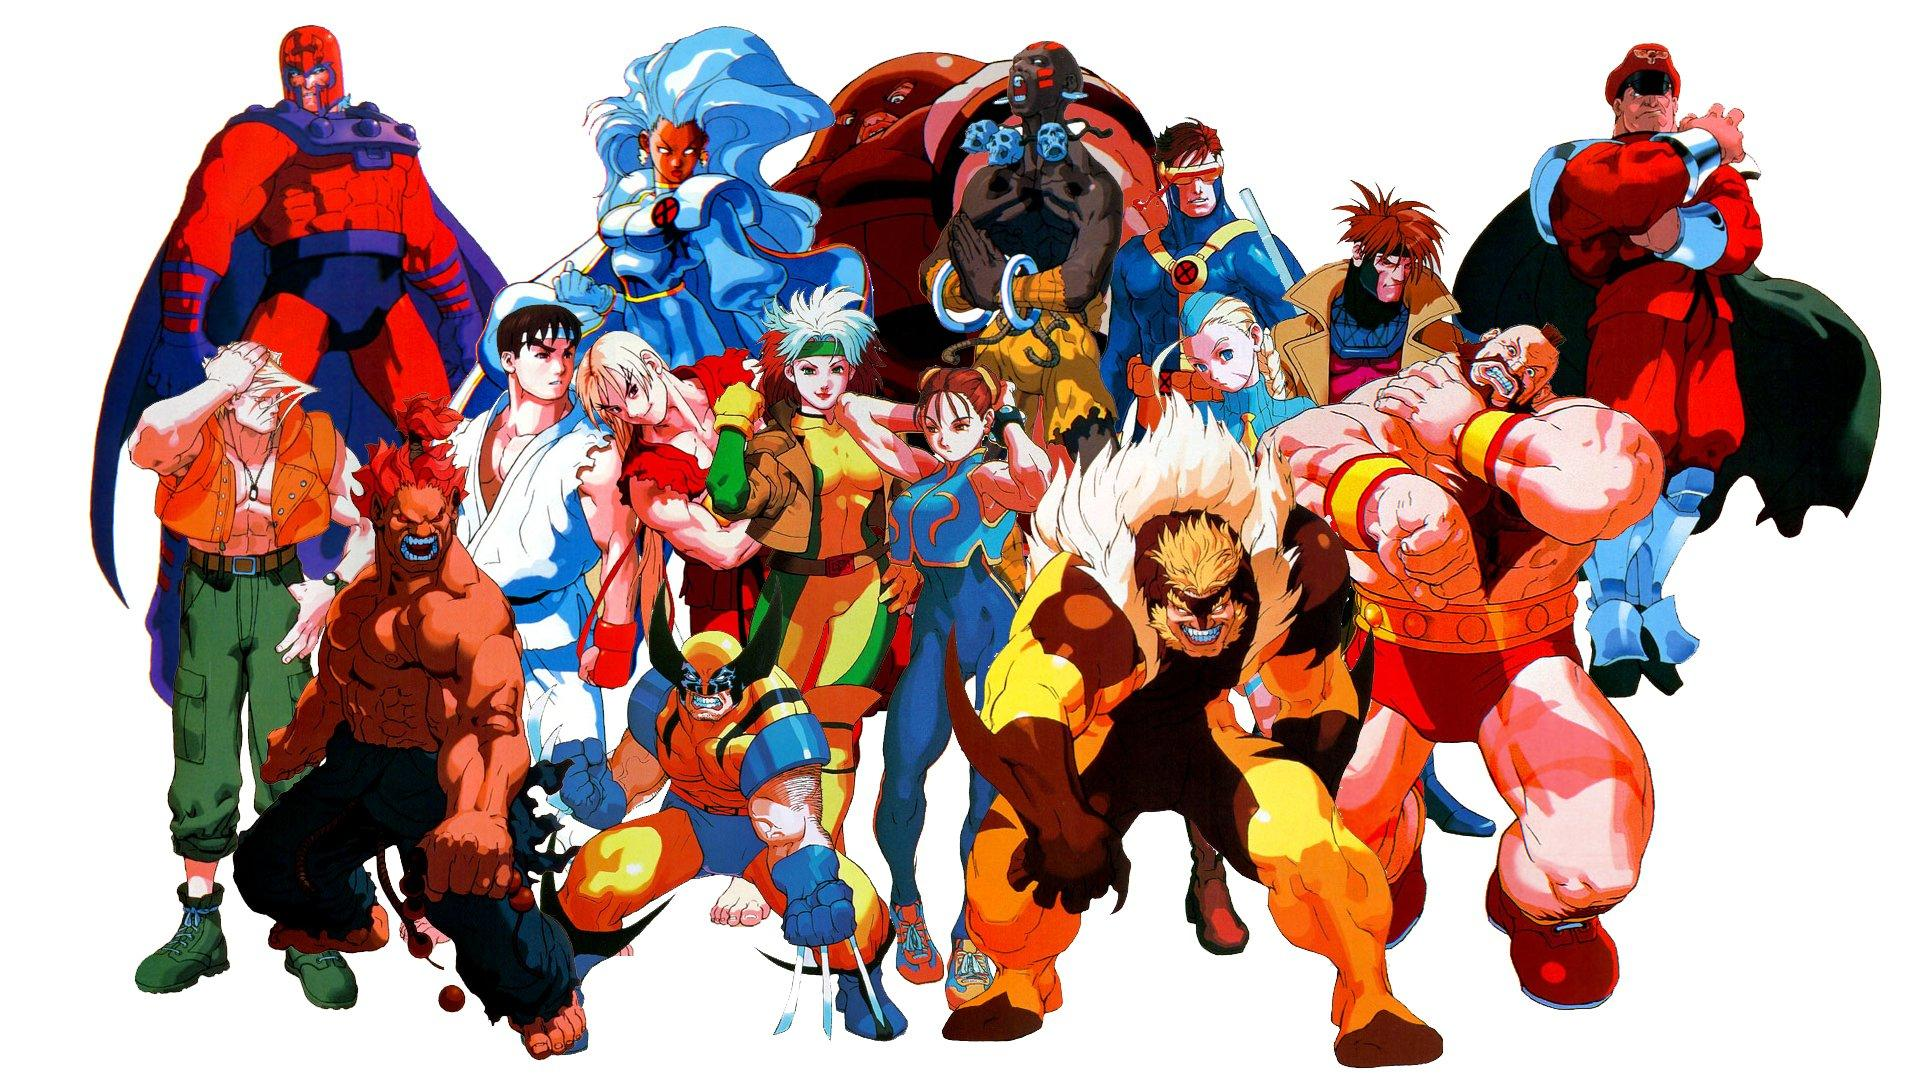 Street fighter 2 wallpapers Gallery